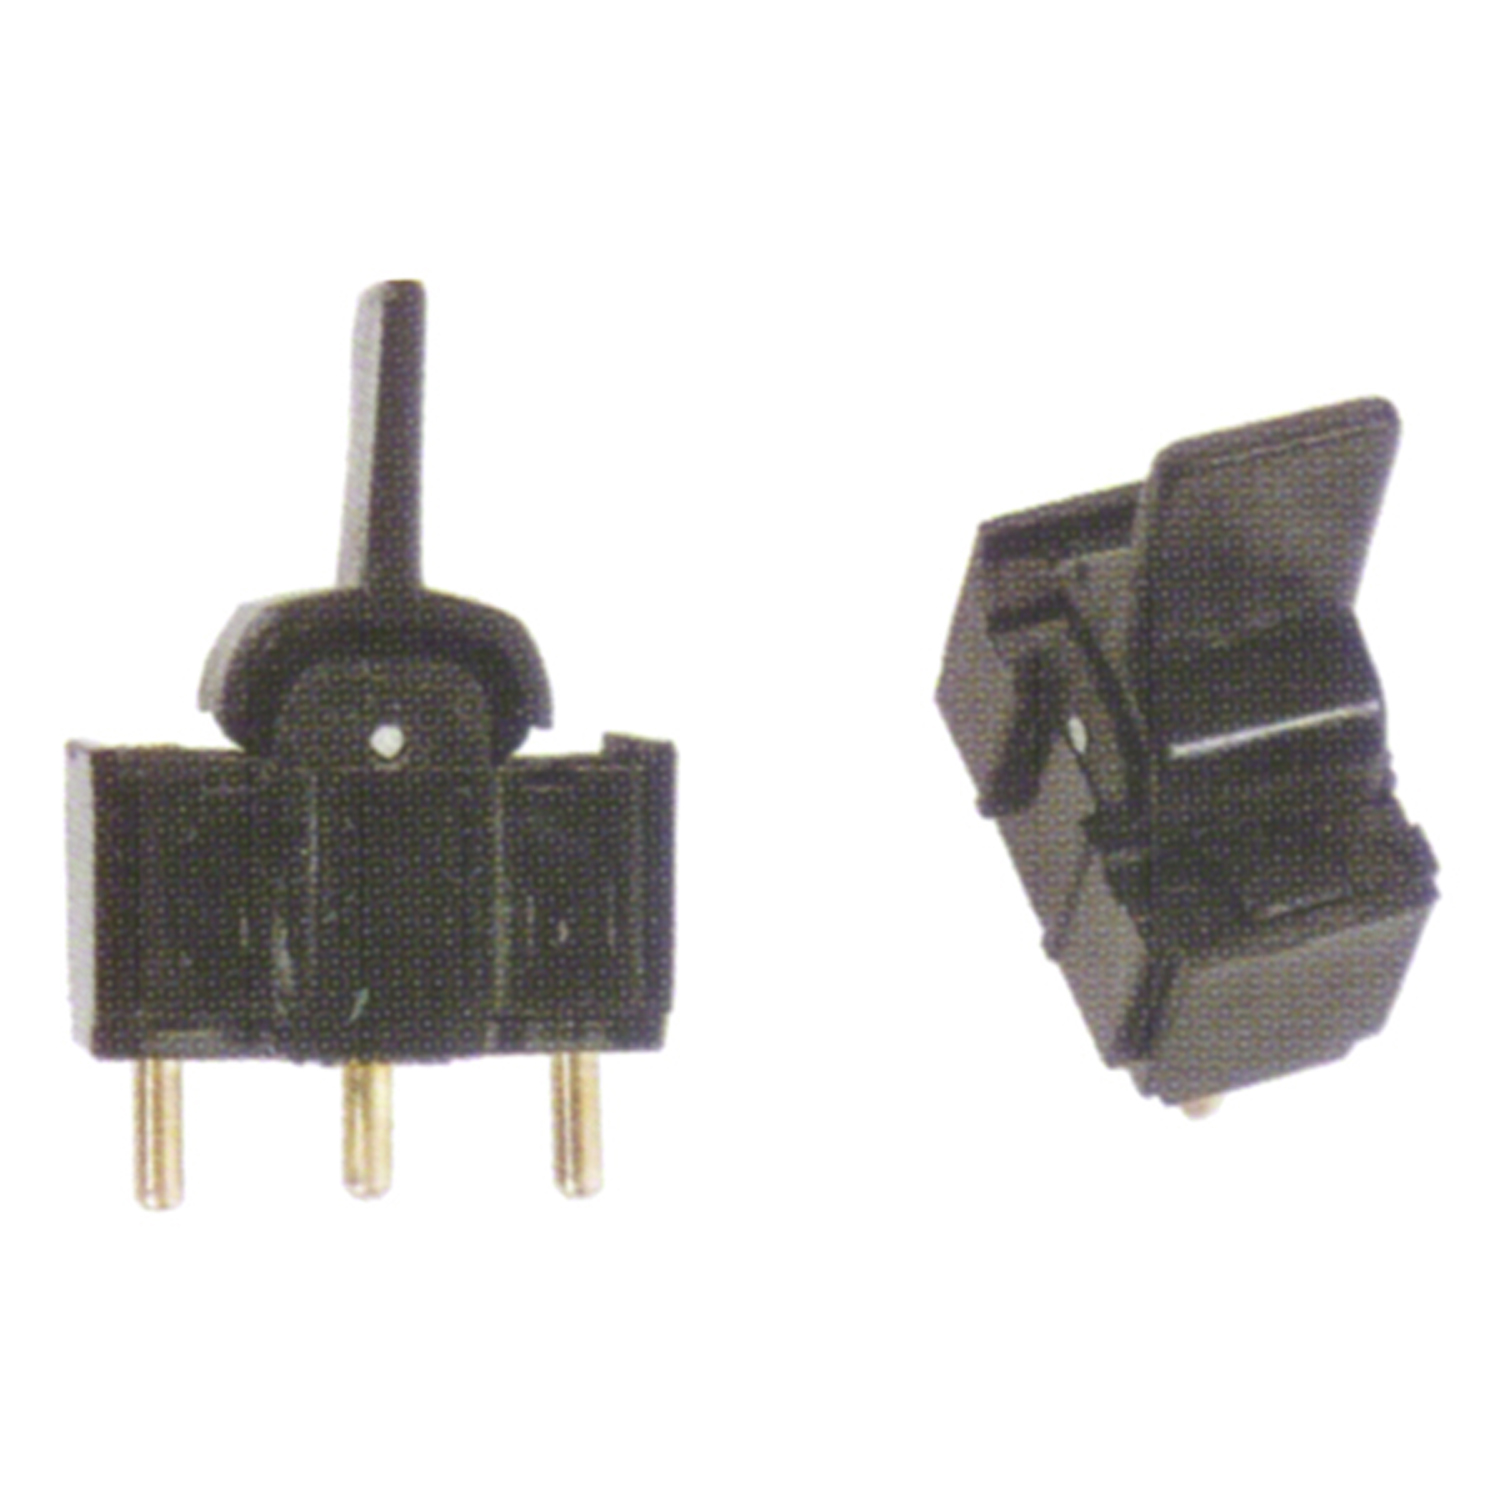 Convertible Top Switch 1967-1968 Chevy Camaro 4030-523-6412S